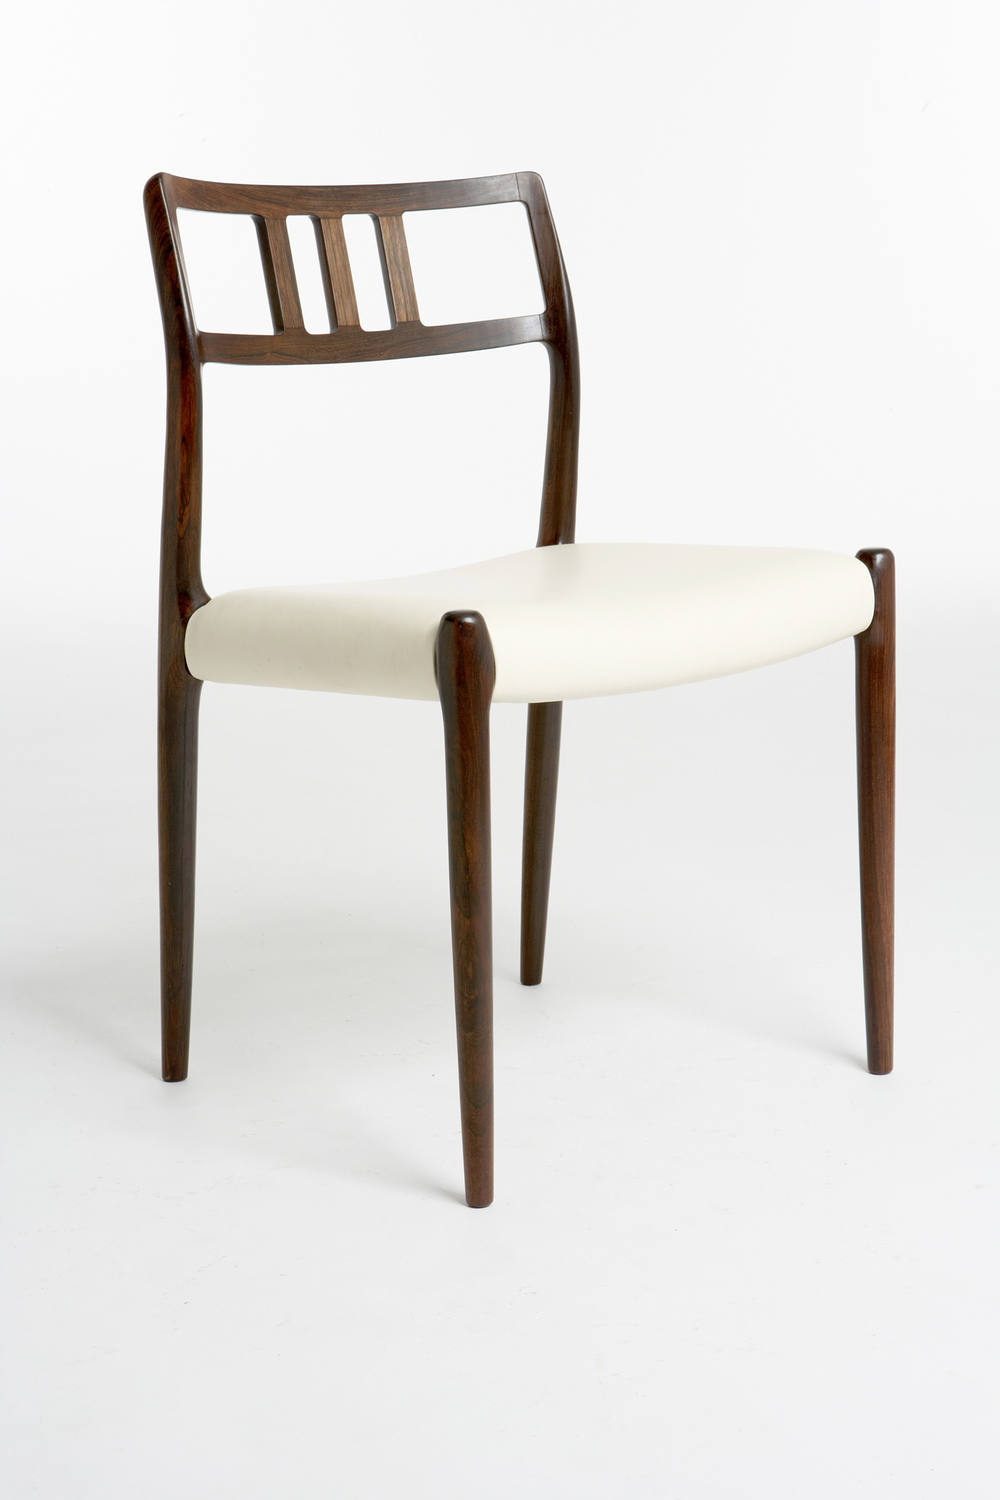 N O Moller 1966 Dining Chair • made 1966-90 •